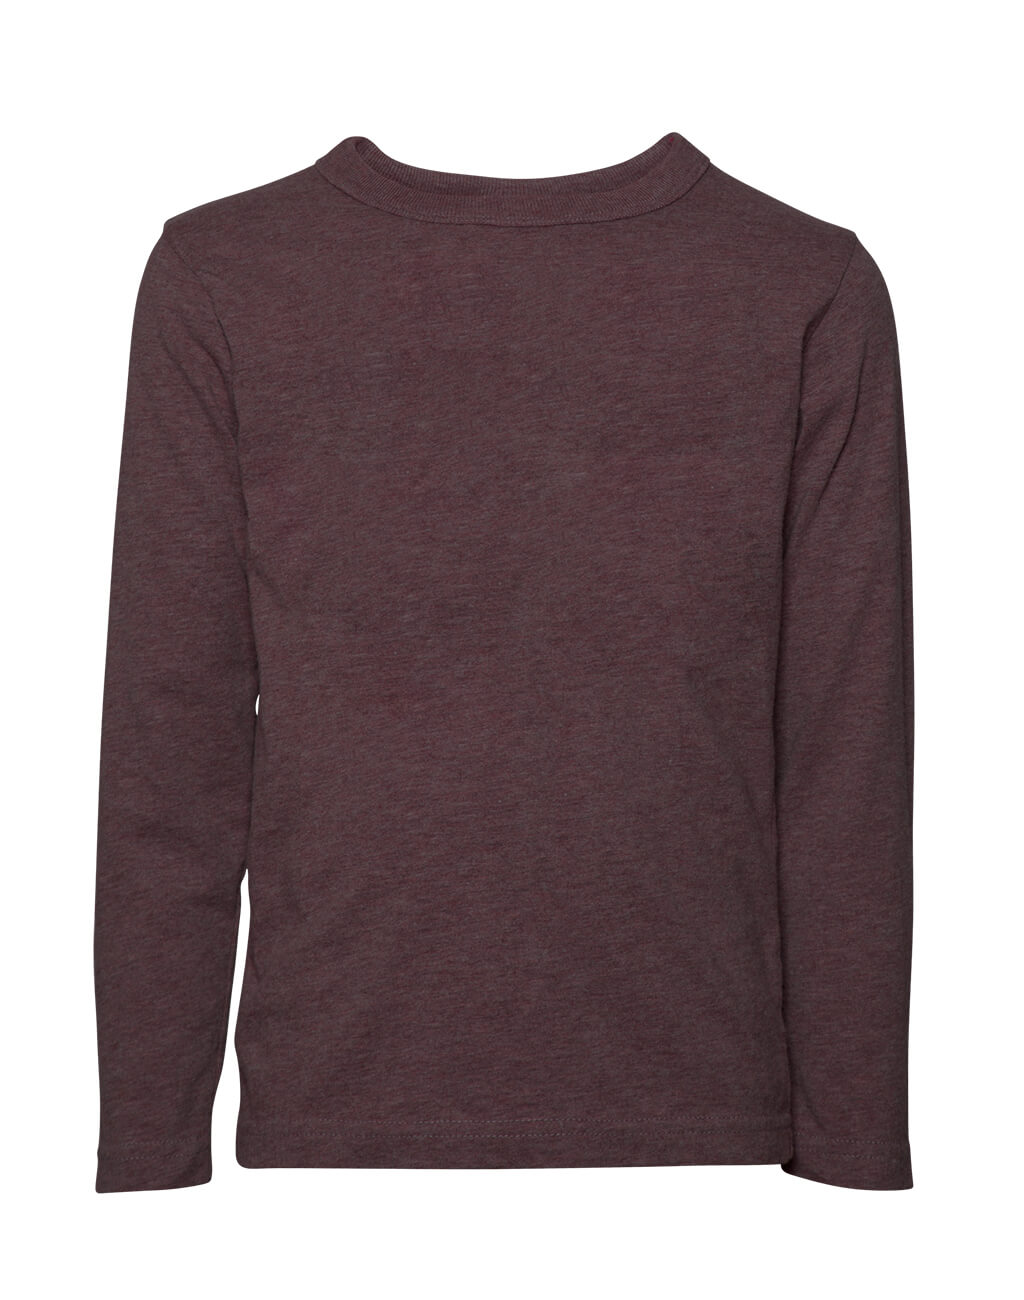 Mans : Long Sleave T-shirt Brown